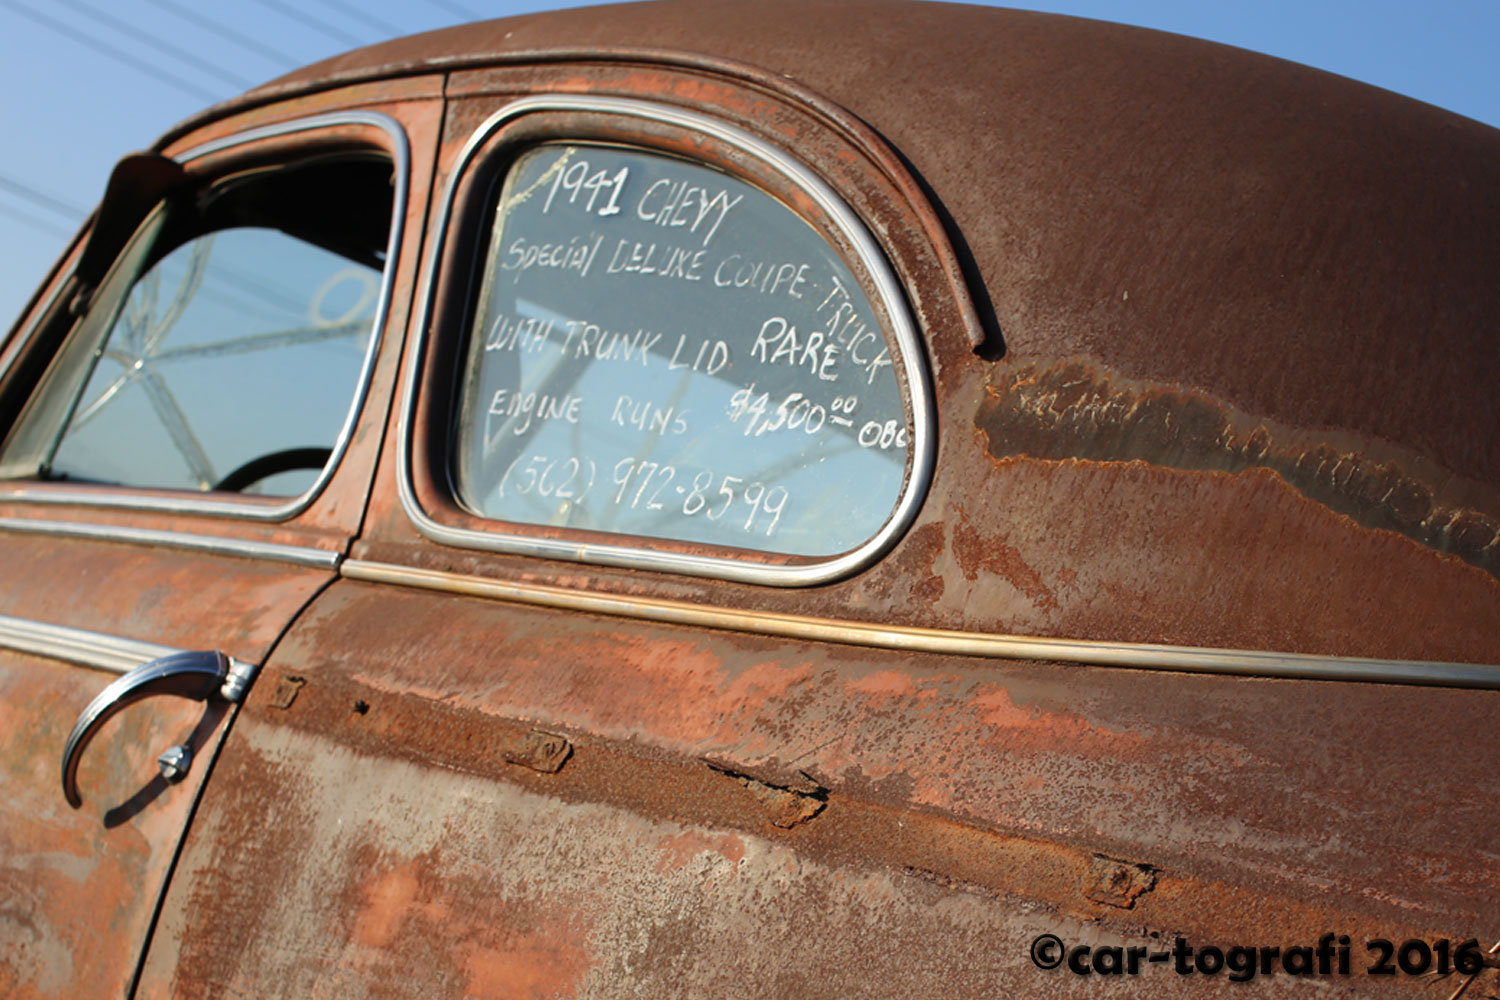 1941 Chevy in the rust car-tografi